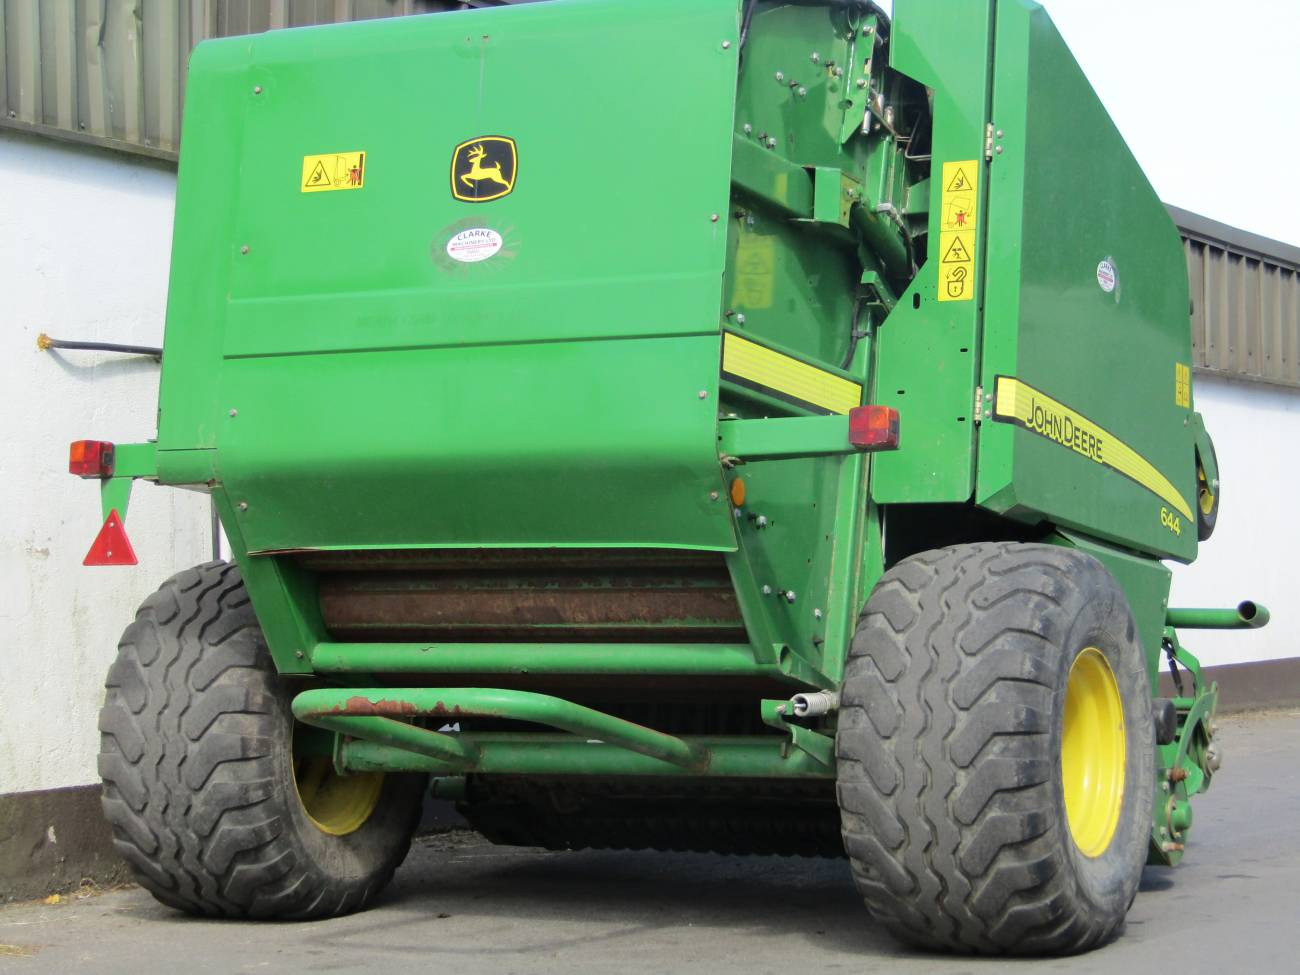 John Deere Operators Manual 644 Baler